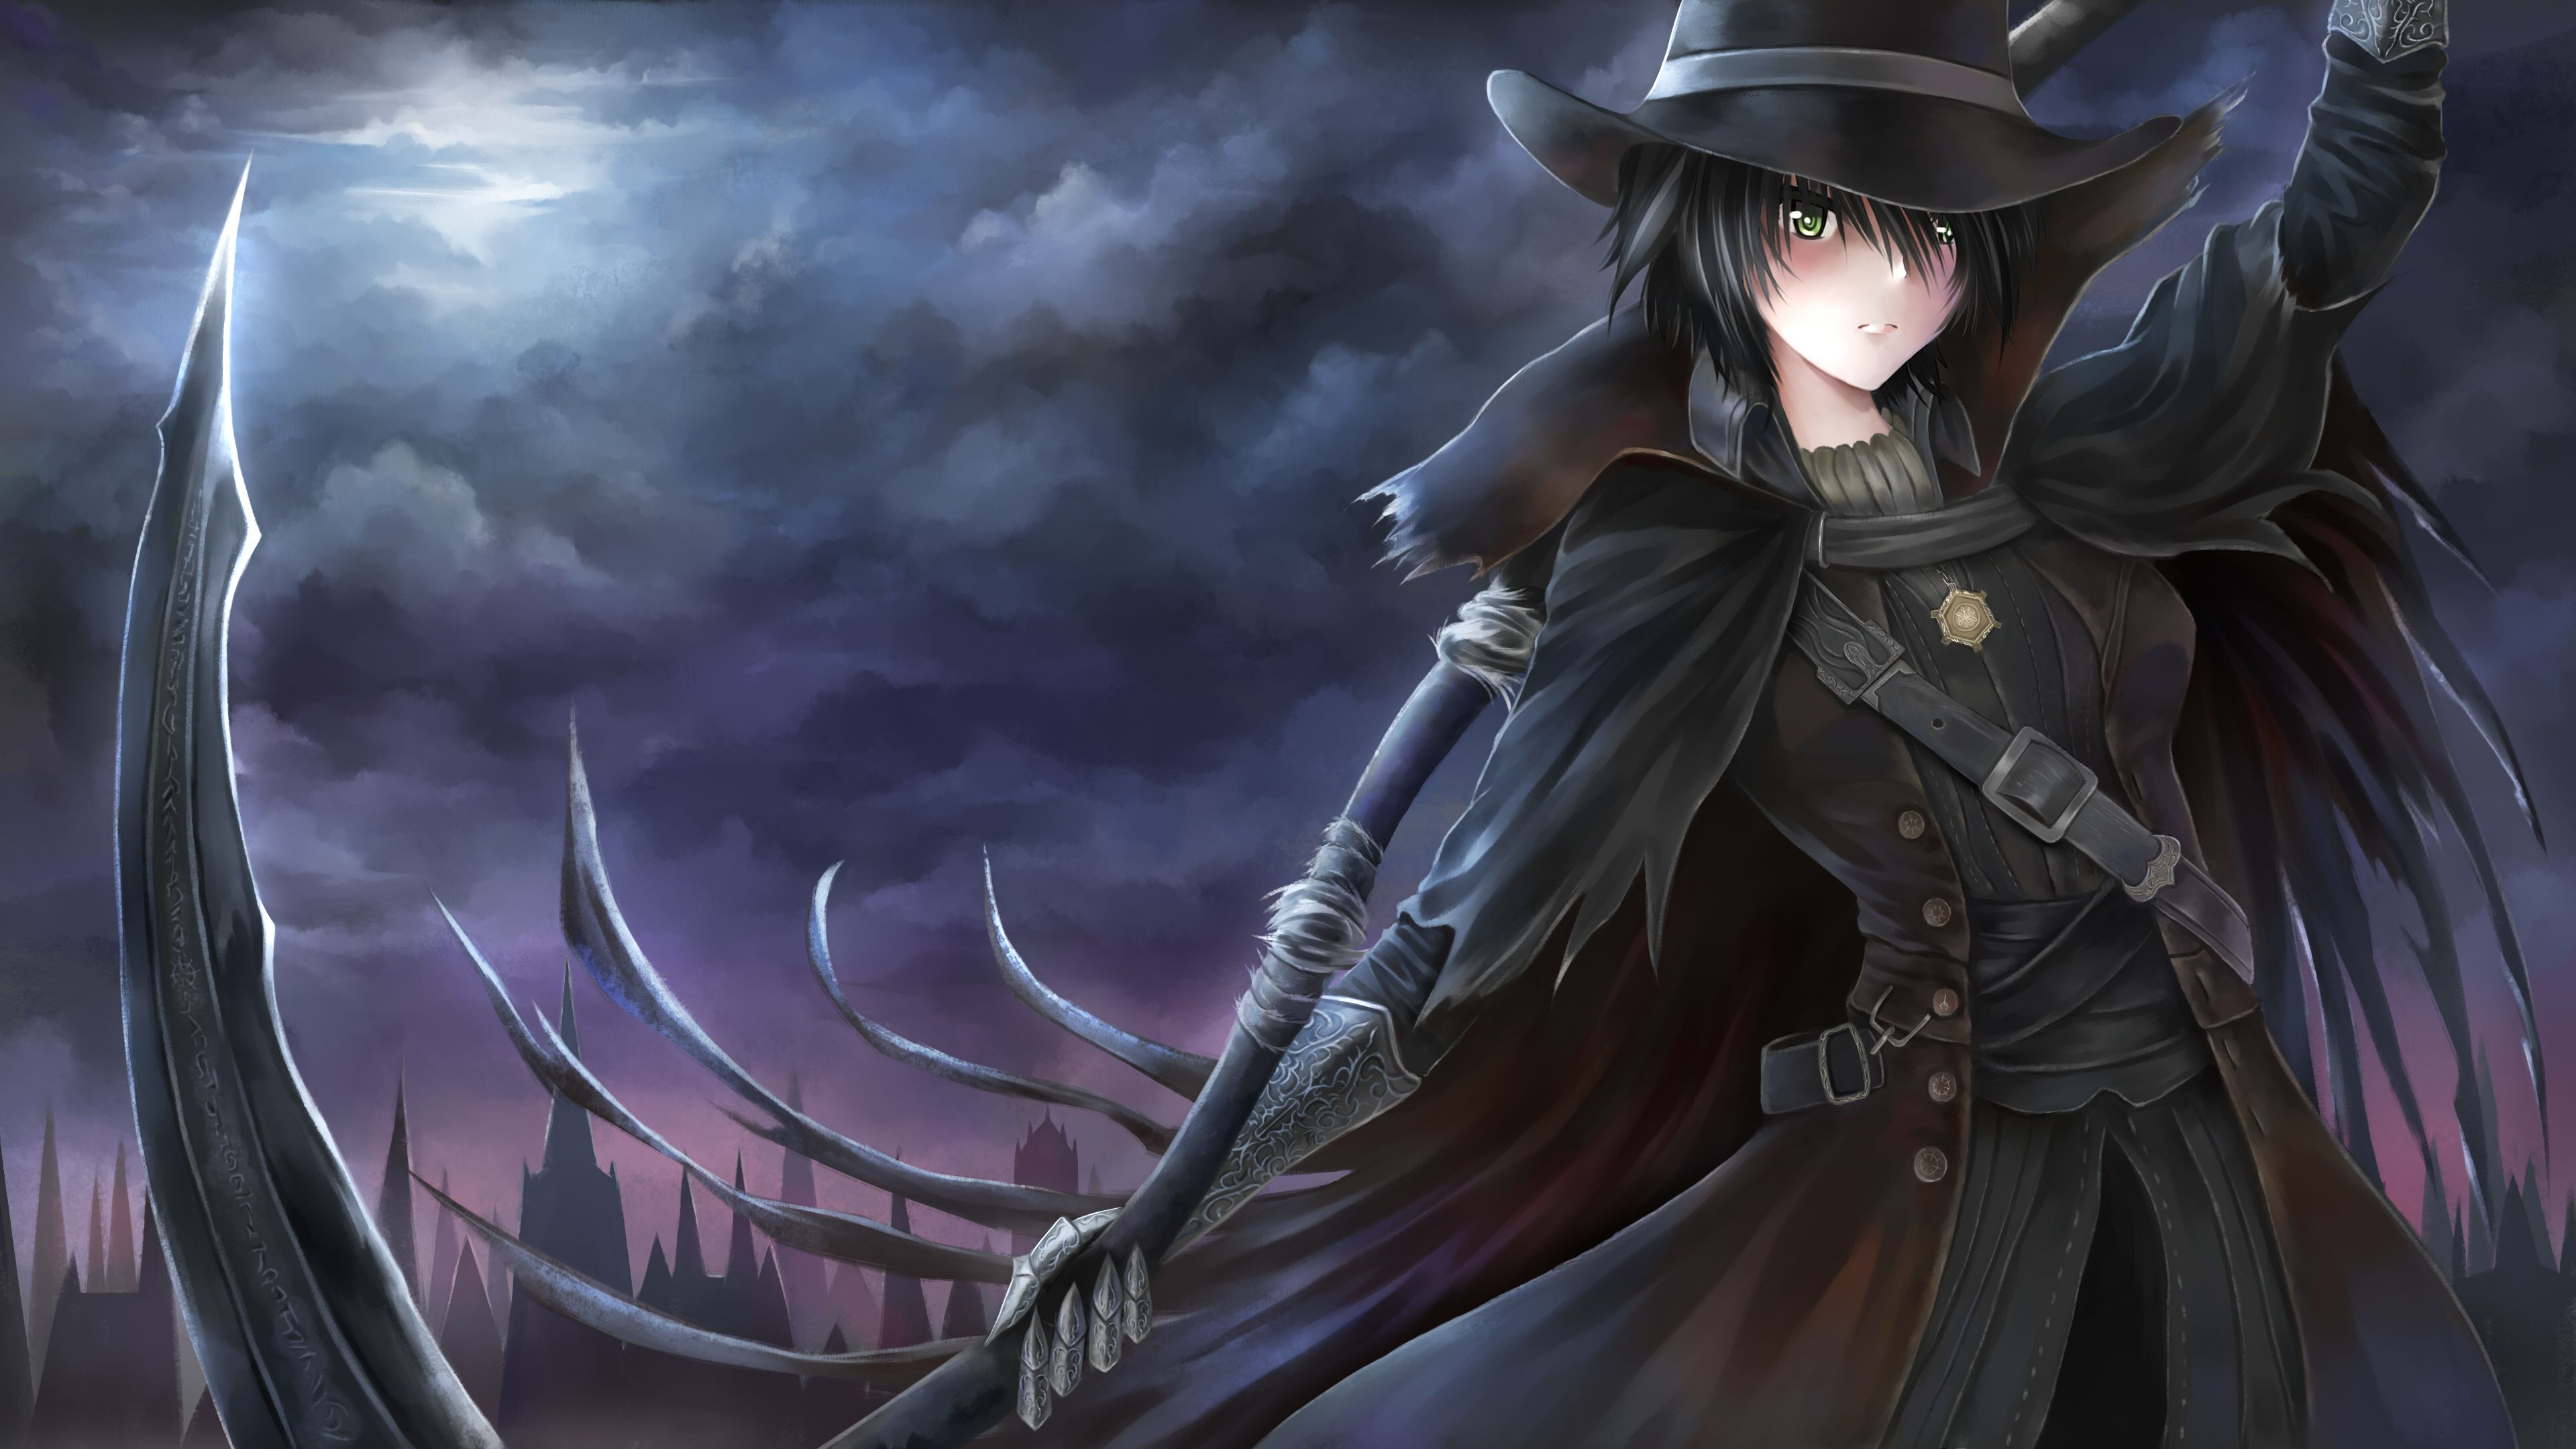 Hd wallpaper anime - High Definition Collection Anime Hd Wallpapers Full Hd Anime